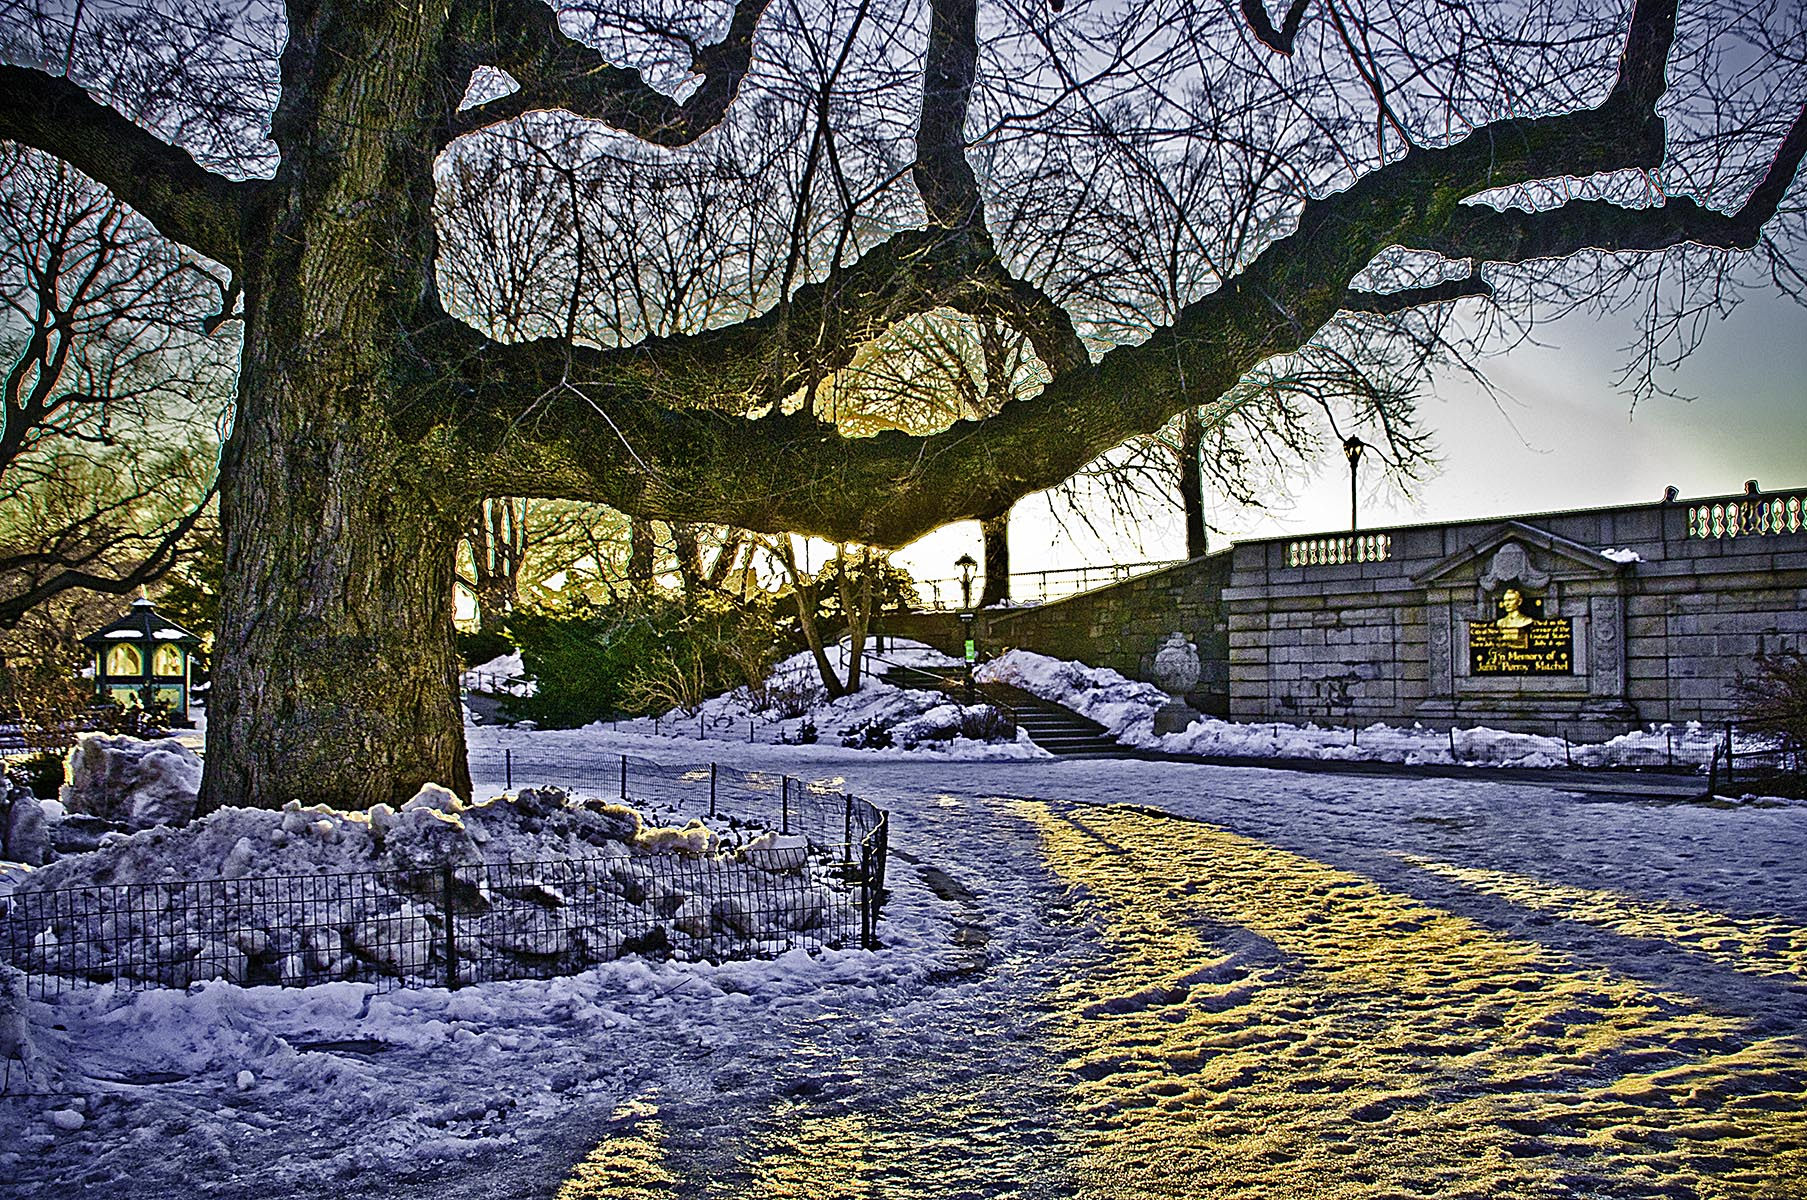 Winter - Central Park NYC - 298